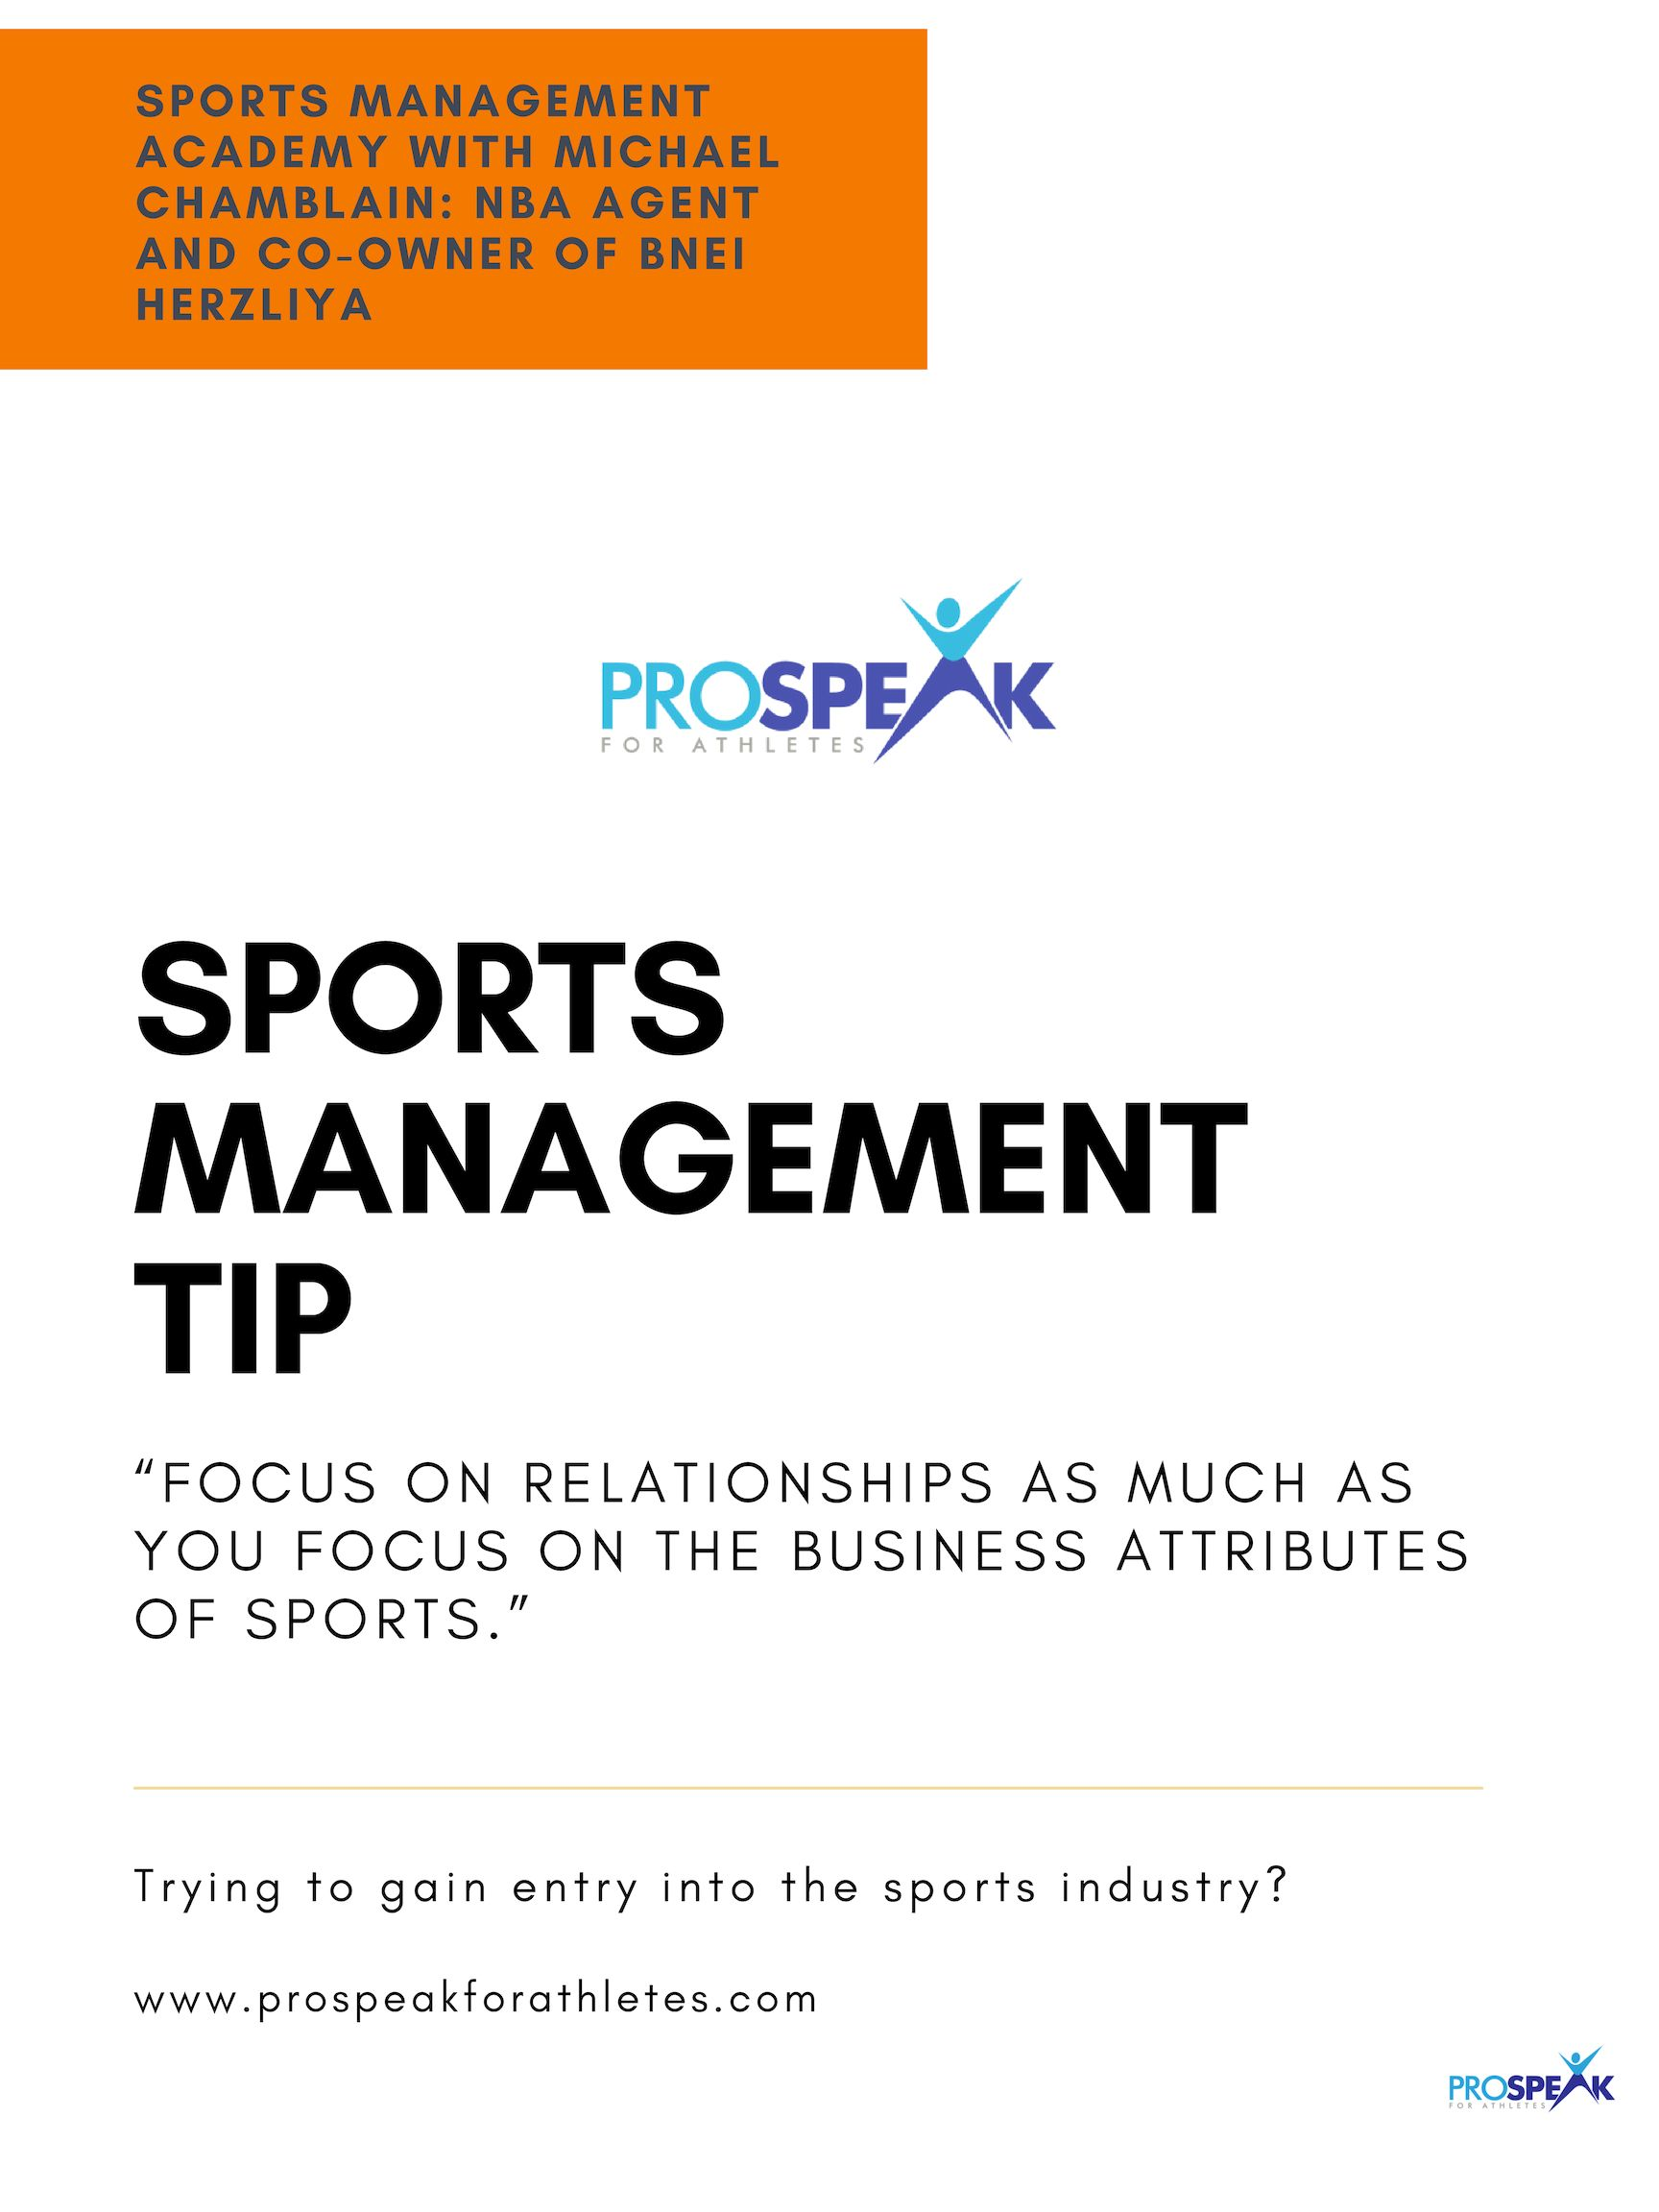 Sports Management MBA Thesis Example - Writing a Doctorate Thesis about Sports Management Stats